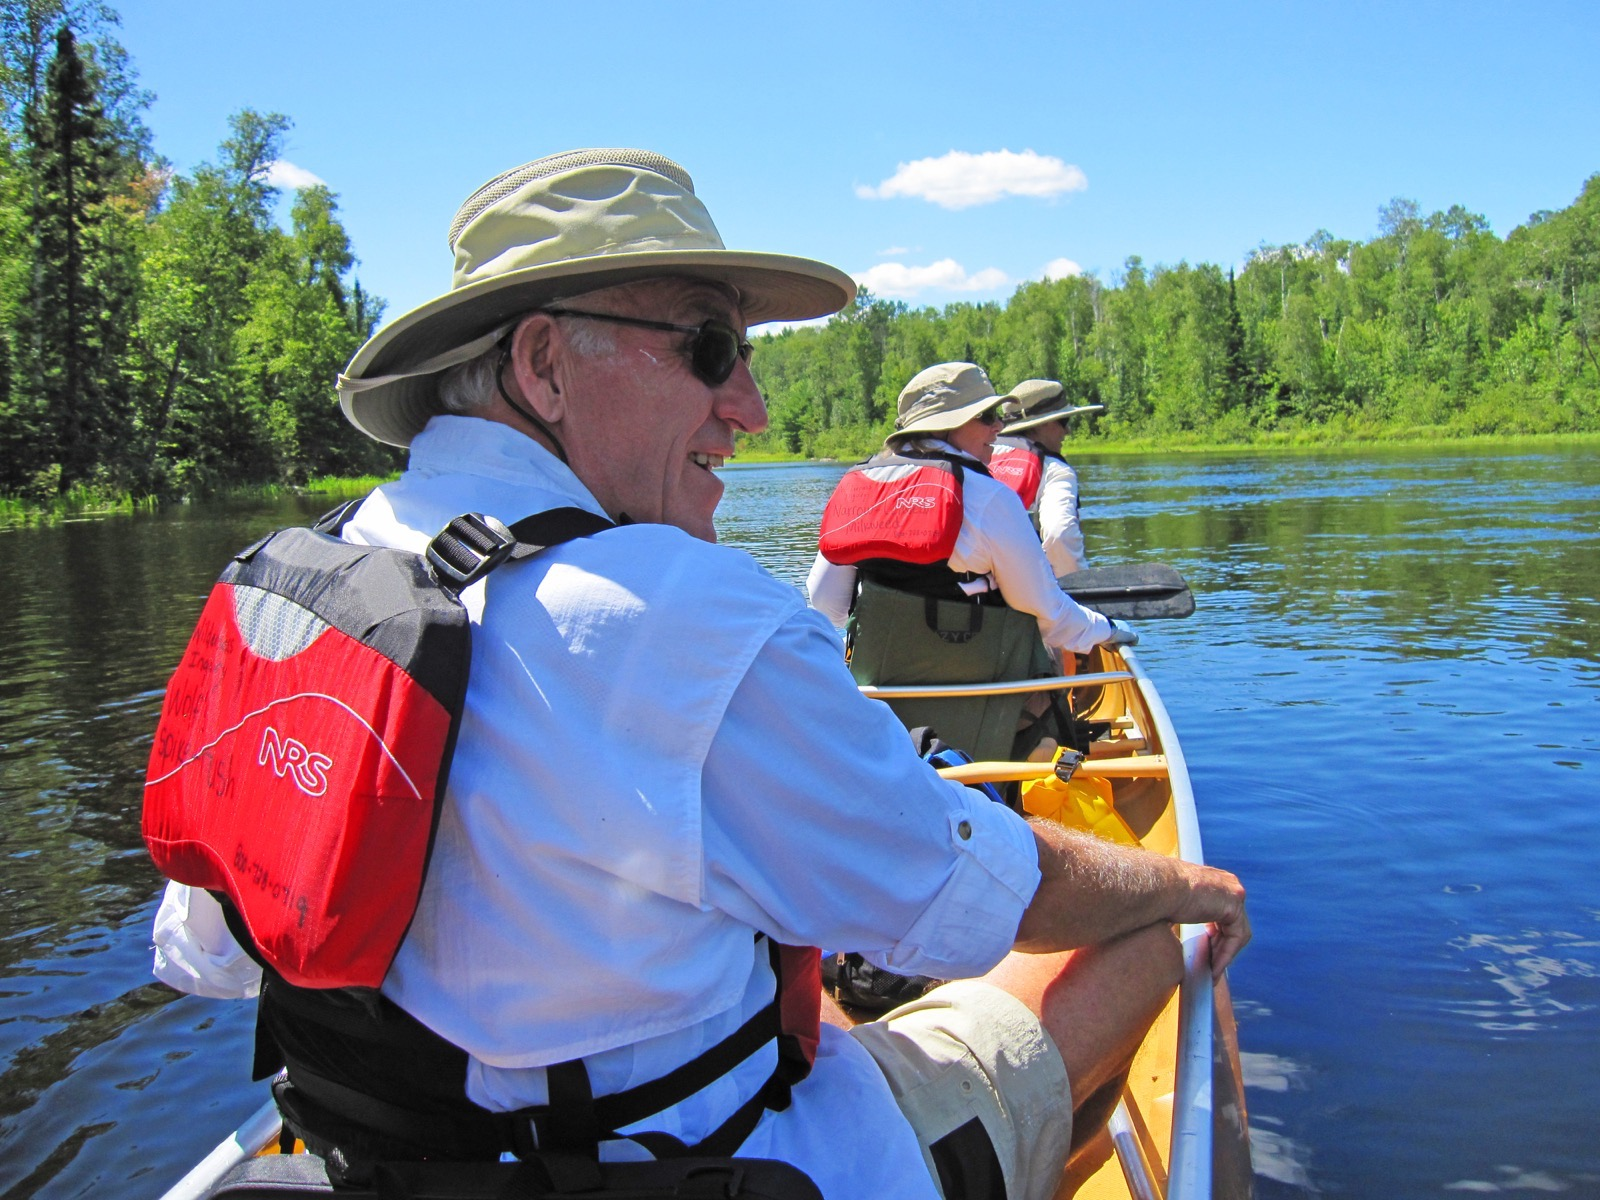 Three people paddle a kevlar canoe in the Boundary Waters on a sunny day.